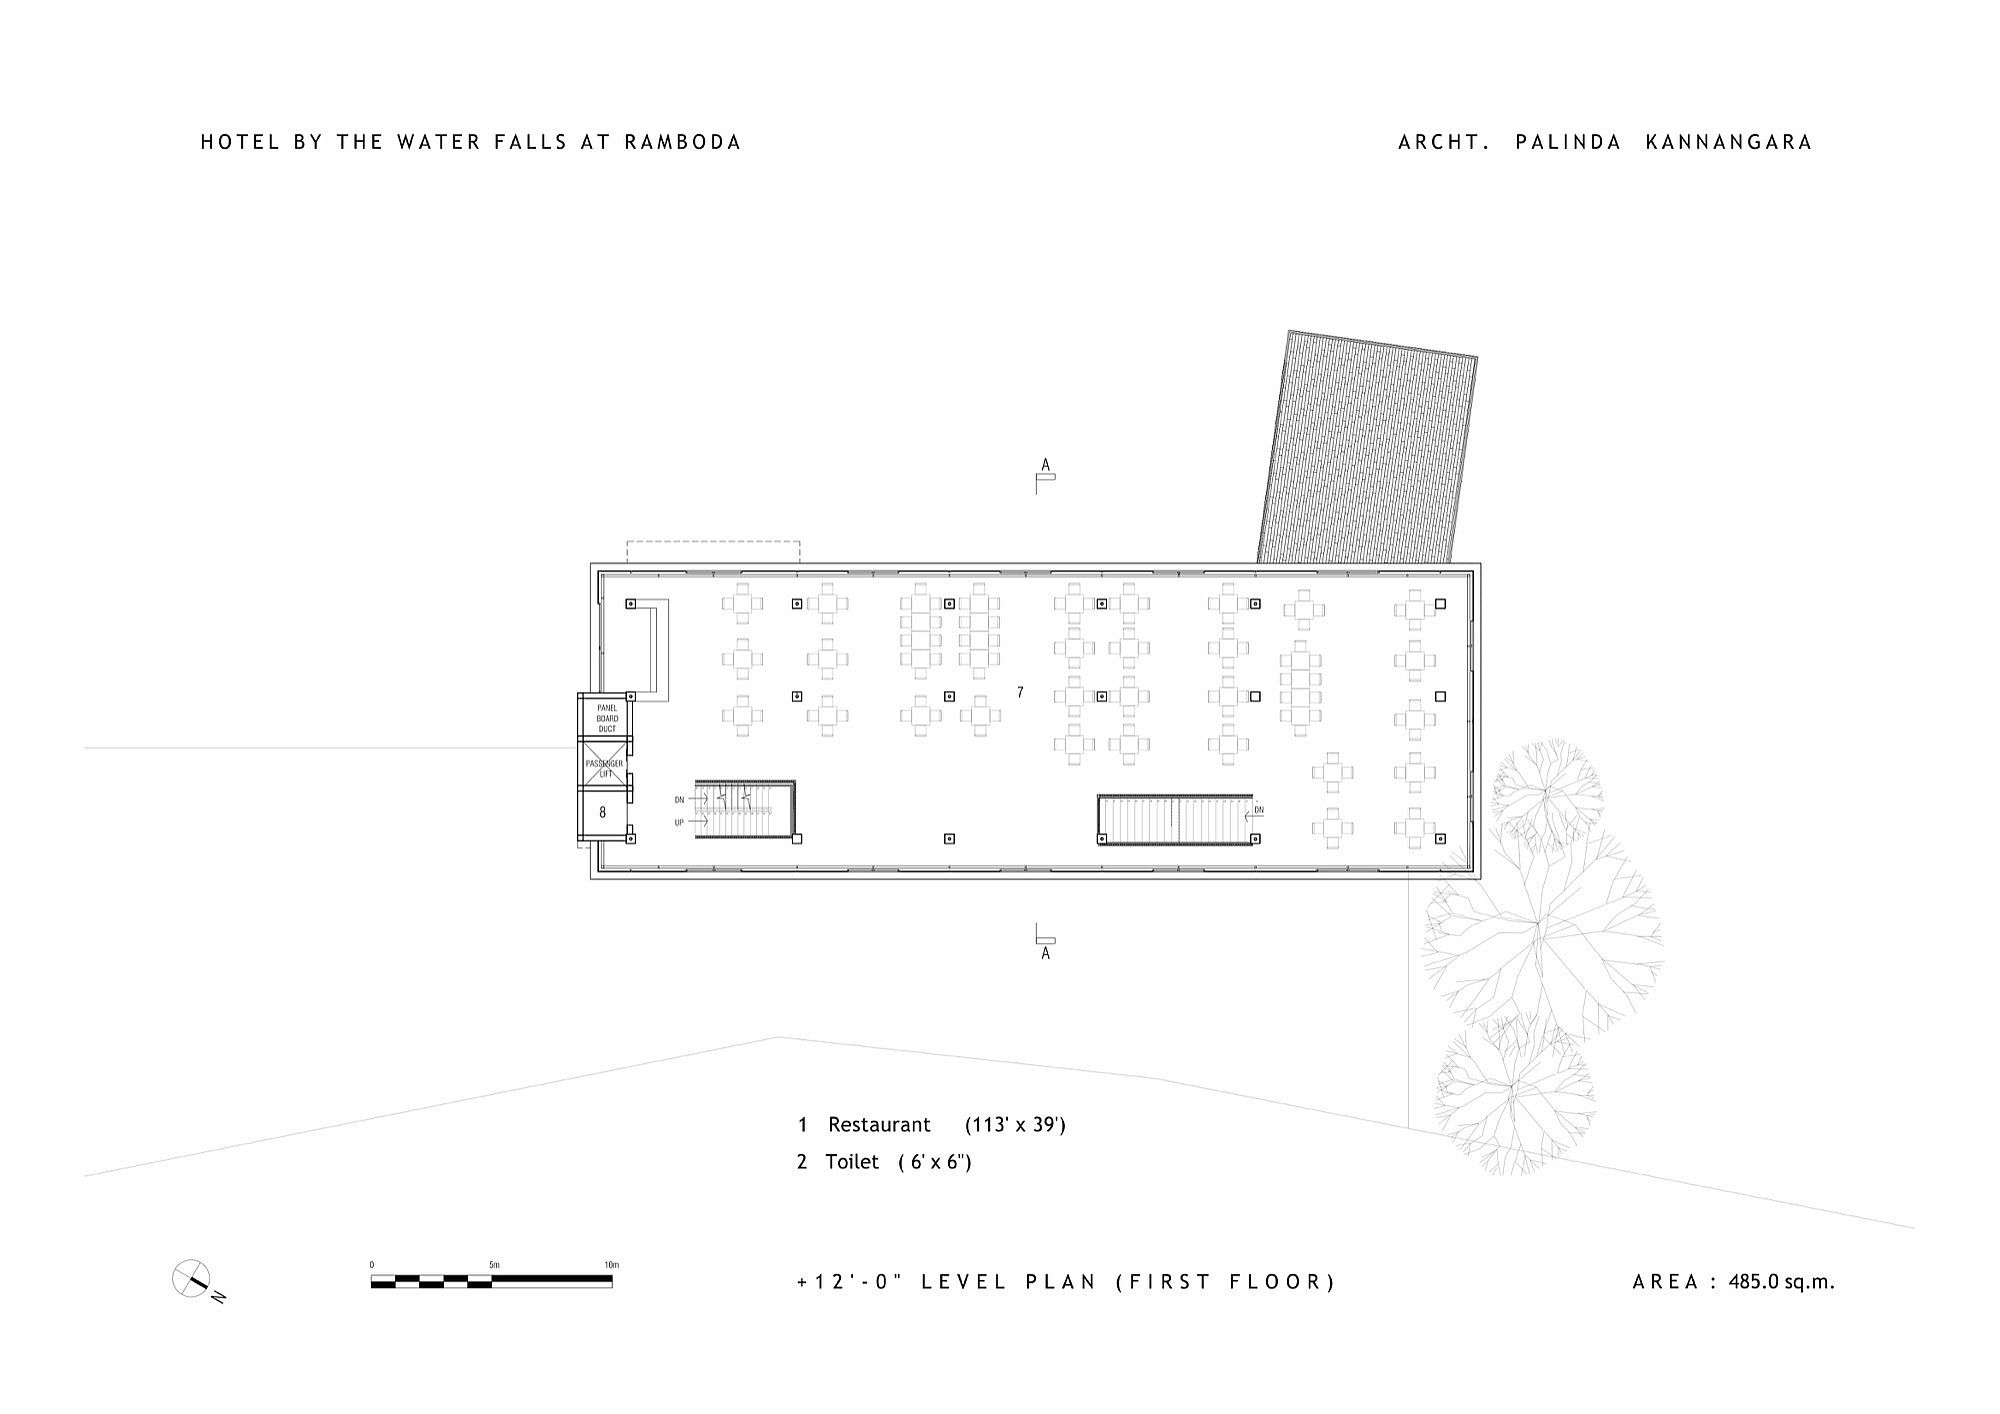 Second-level-floor-plan-of-the-Hotel-by-the-Water-Falls